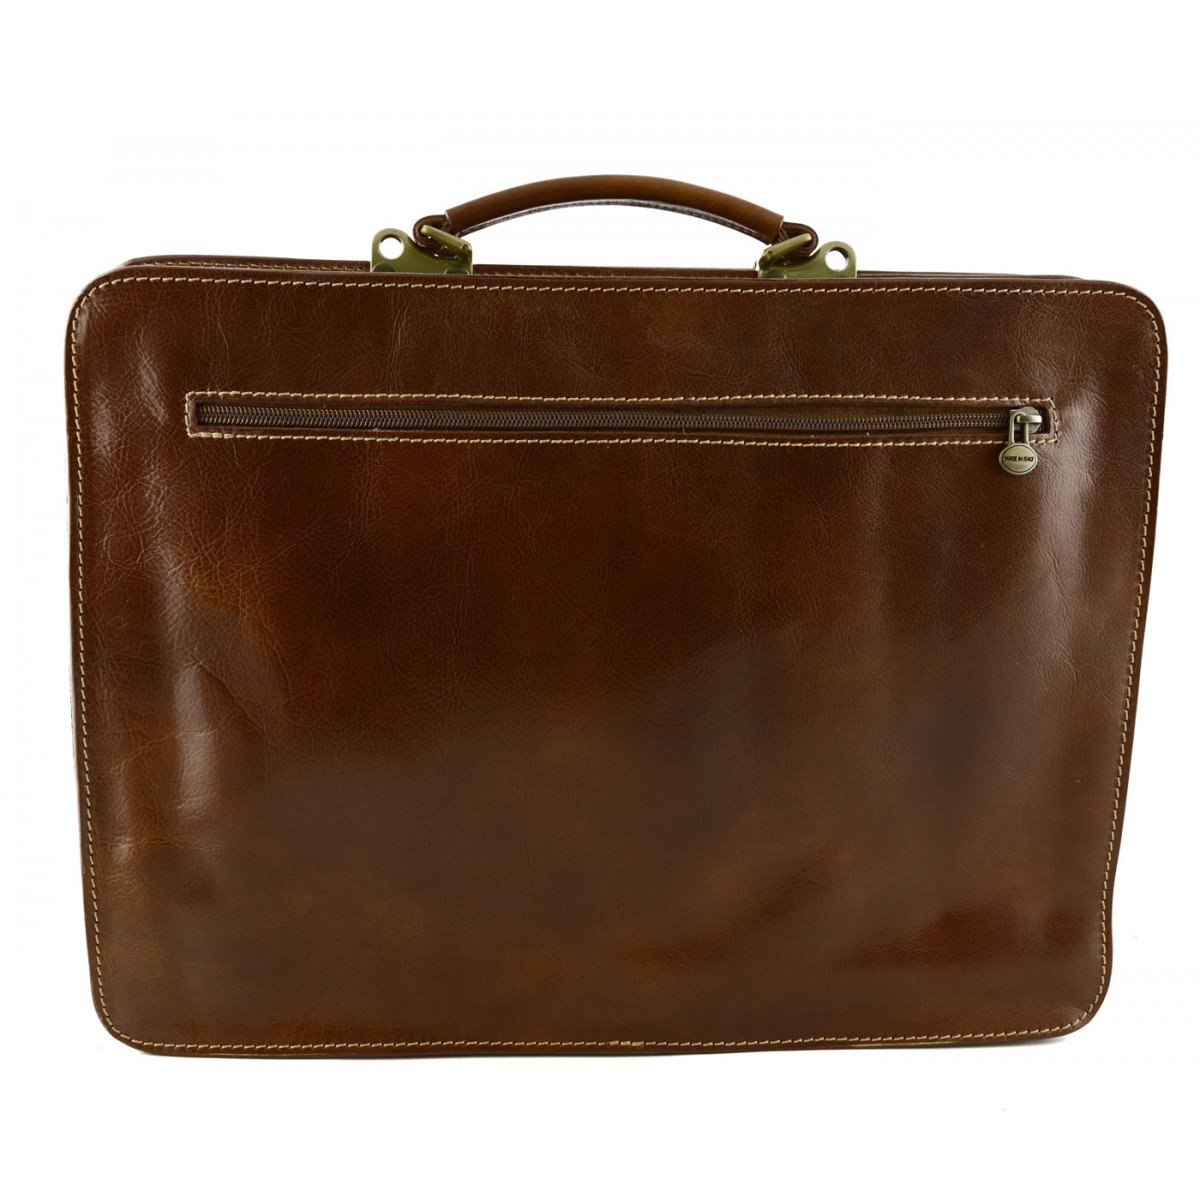 Large Color Tan Dream Leather Bags Made in Italy Genuine Leather Genuine Leather Business Bag Mod